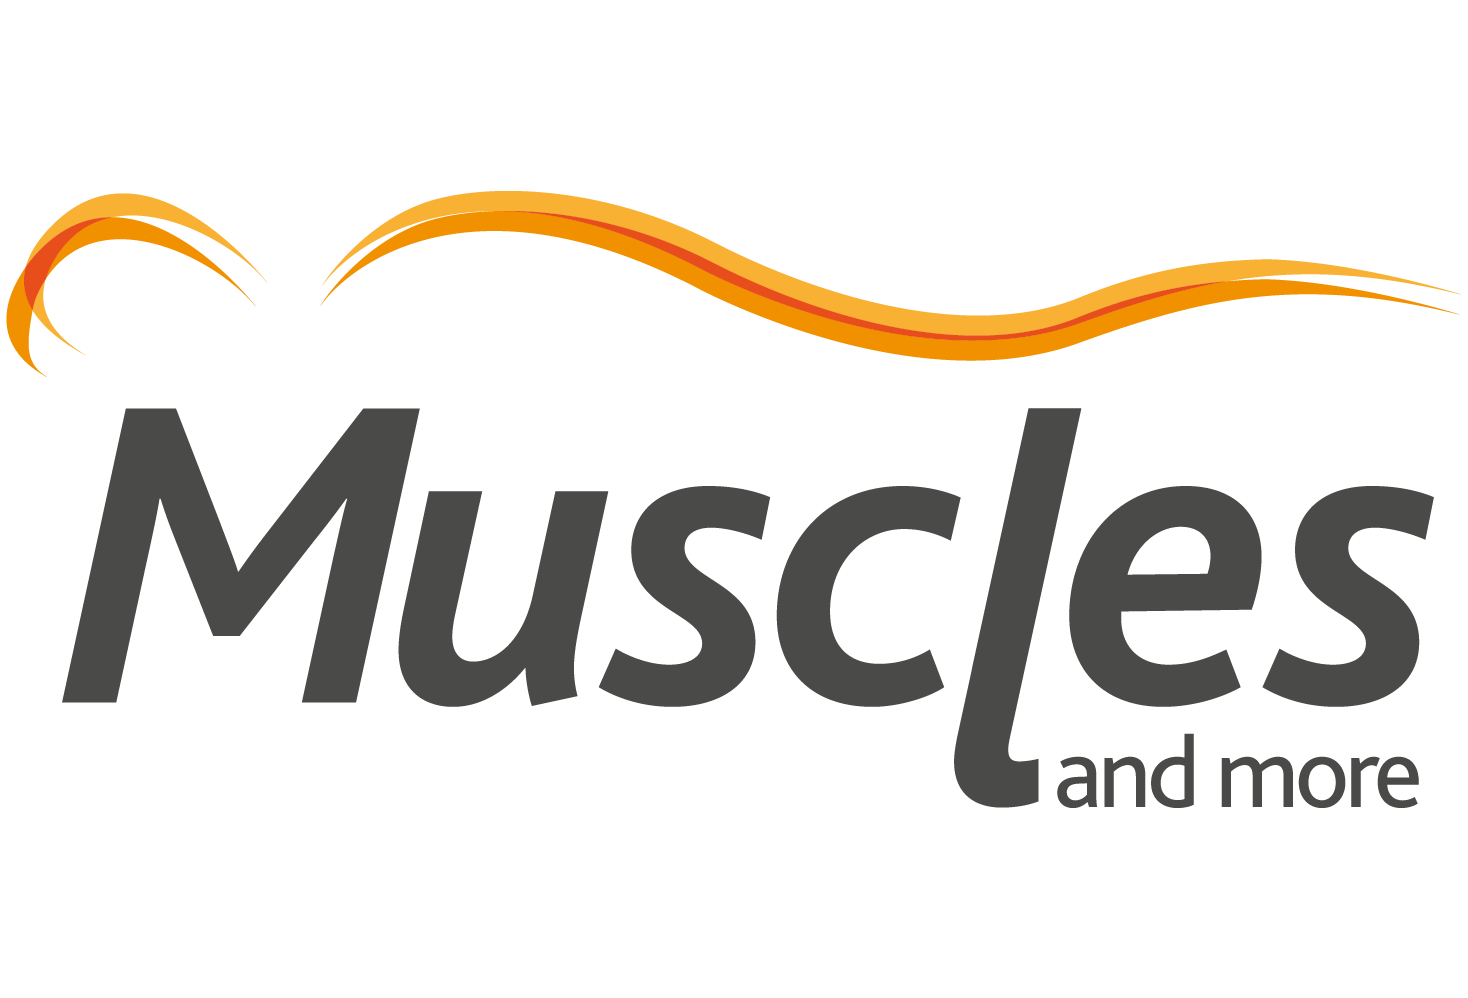 Sportmassage | ontspanningsmassage | blessureverzorging | Muscles and more